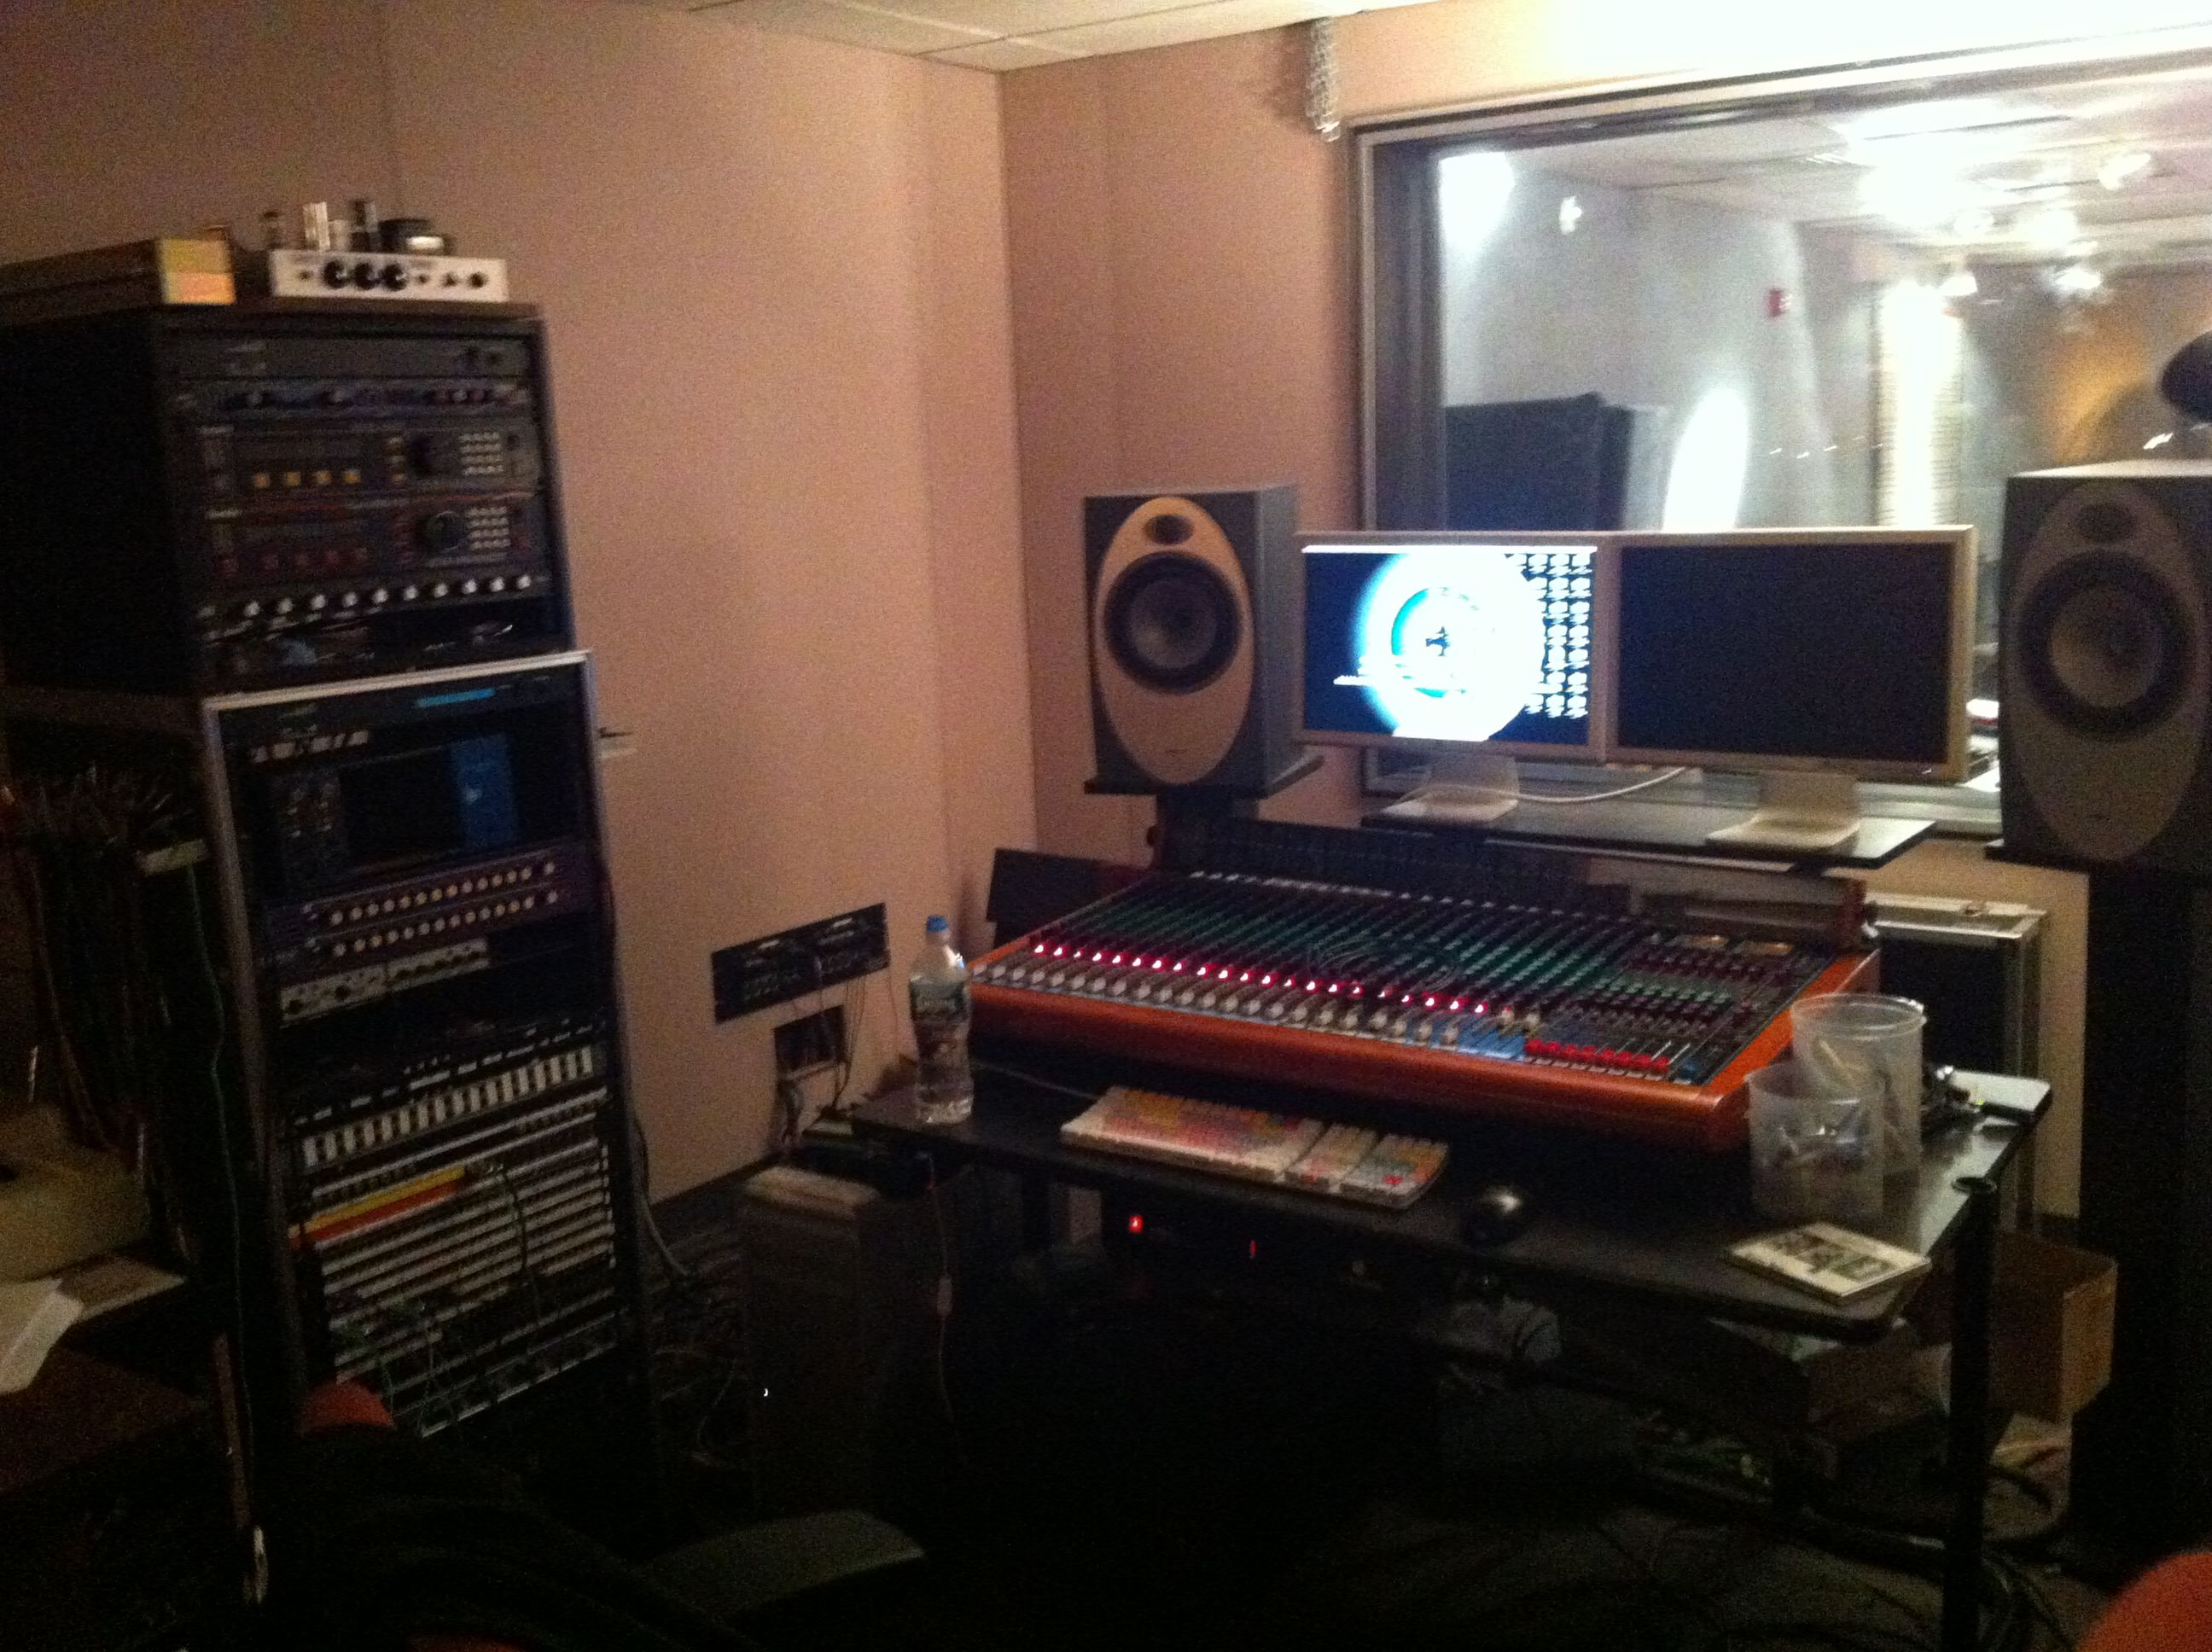 Behind The Desk At The University Of The Arts 2nd Floor Merriam